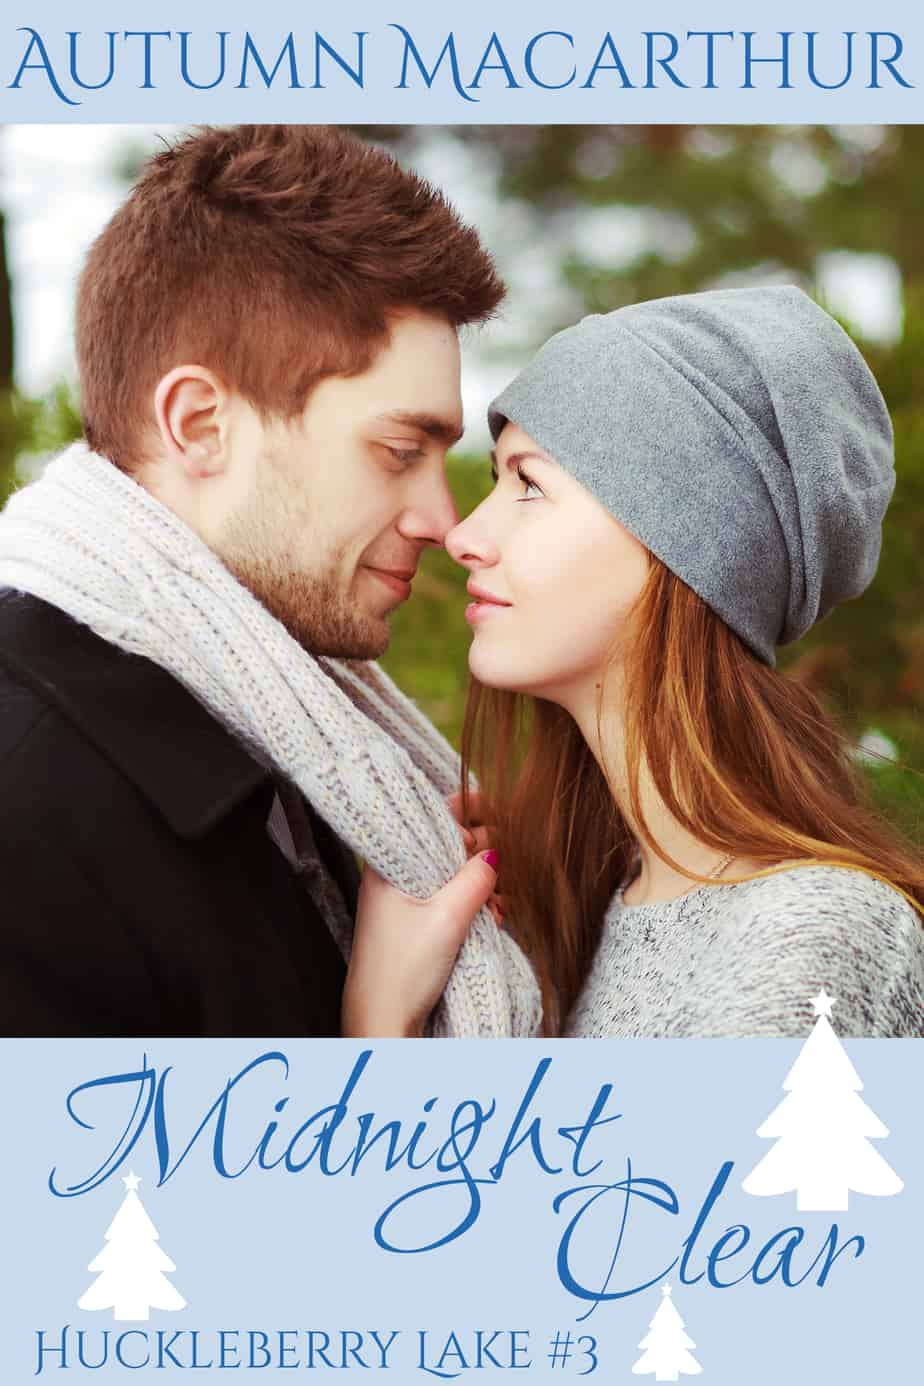 cover image for Midnight Clear, new Christian romance by Autumn Macarthur